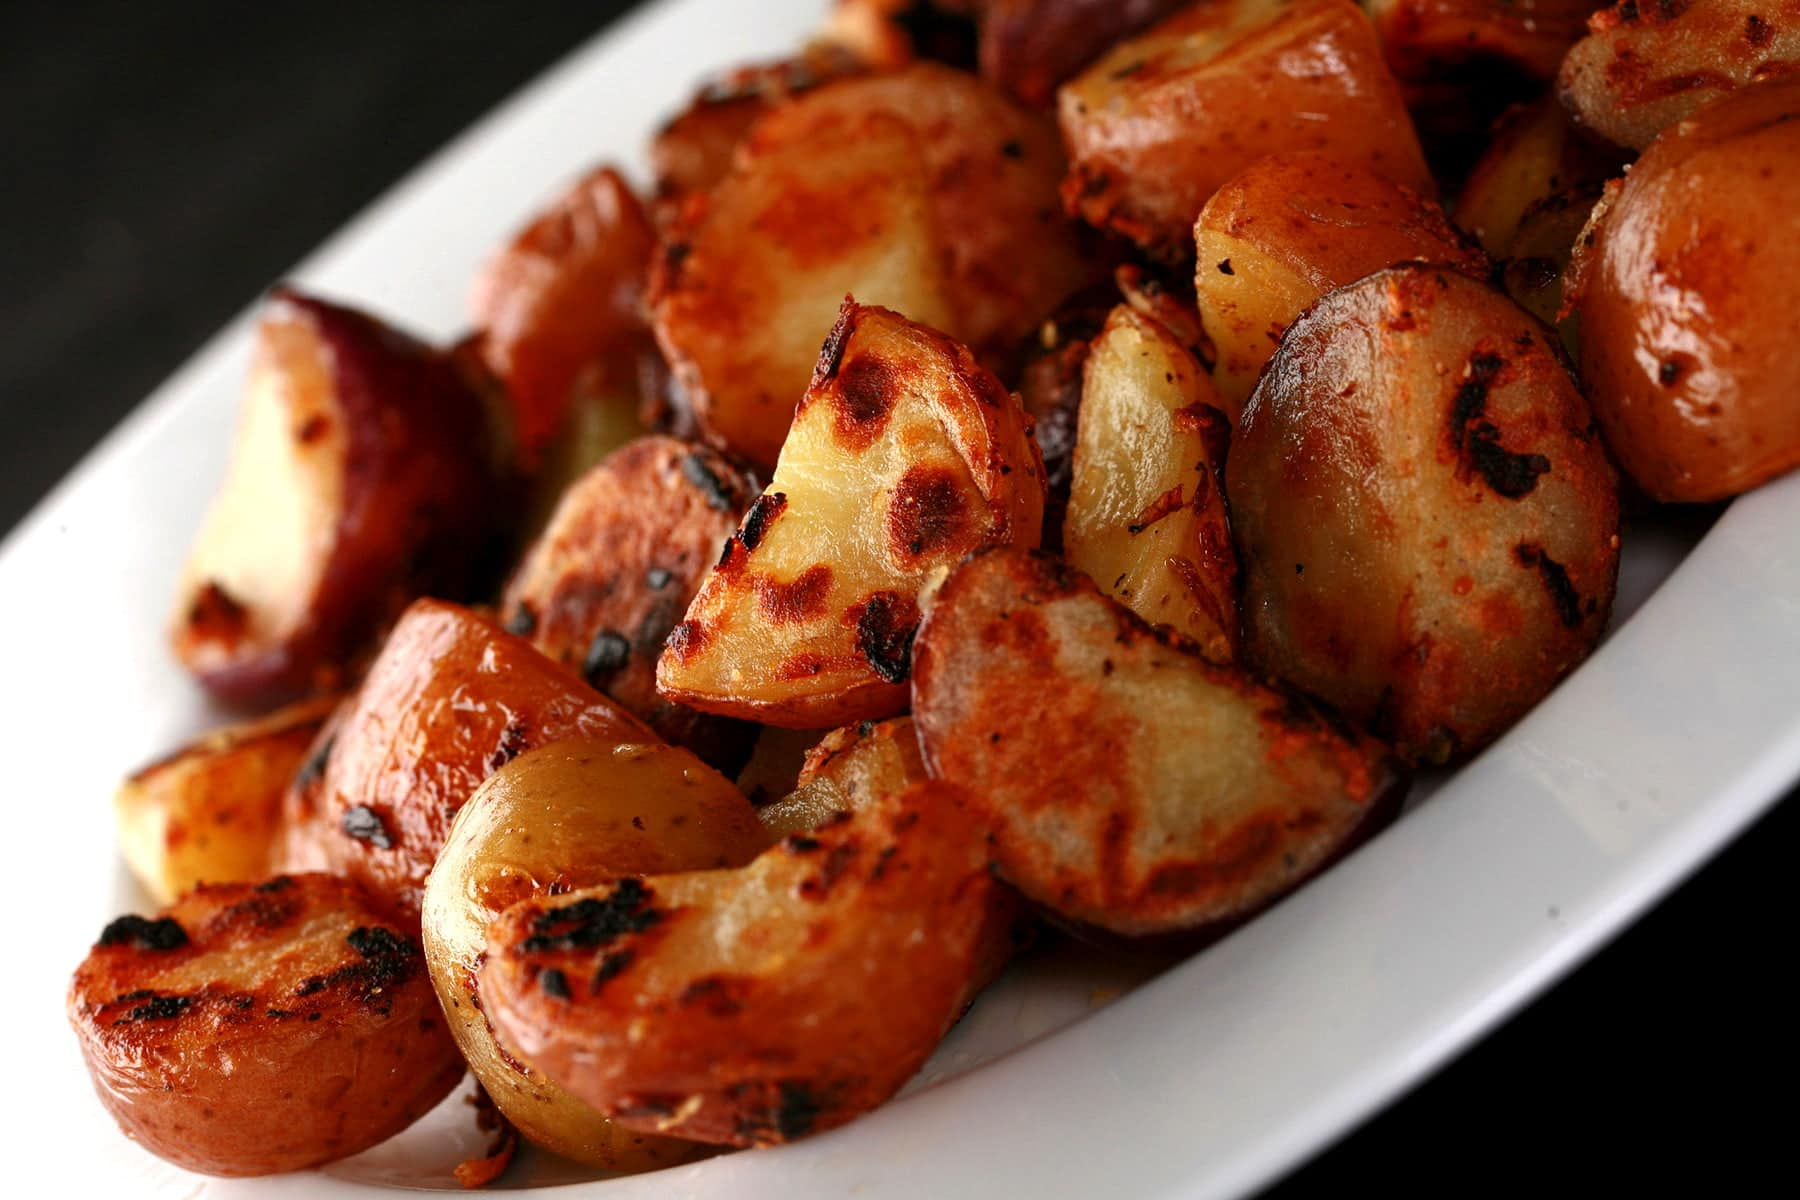 A white plate with a large helping of the BEST hash browns ever - chunks of red potatoes with charring and blistering on the surfaces.